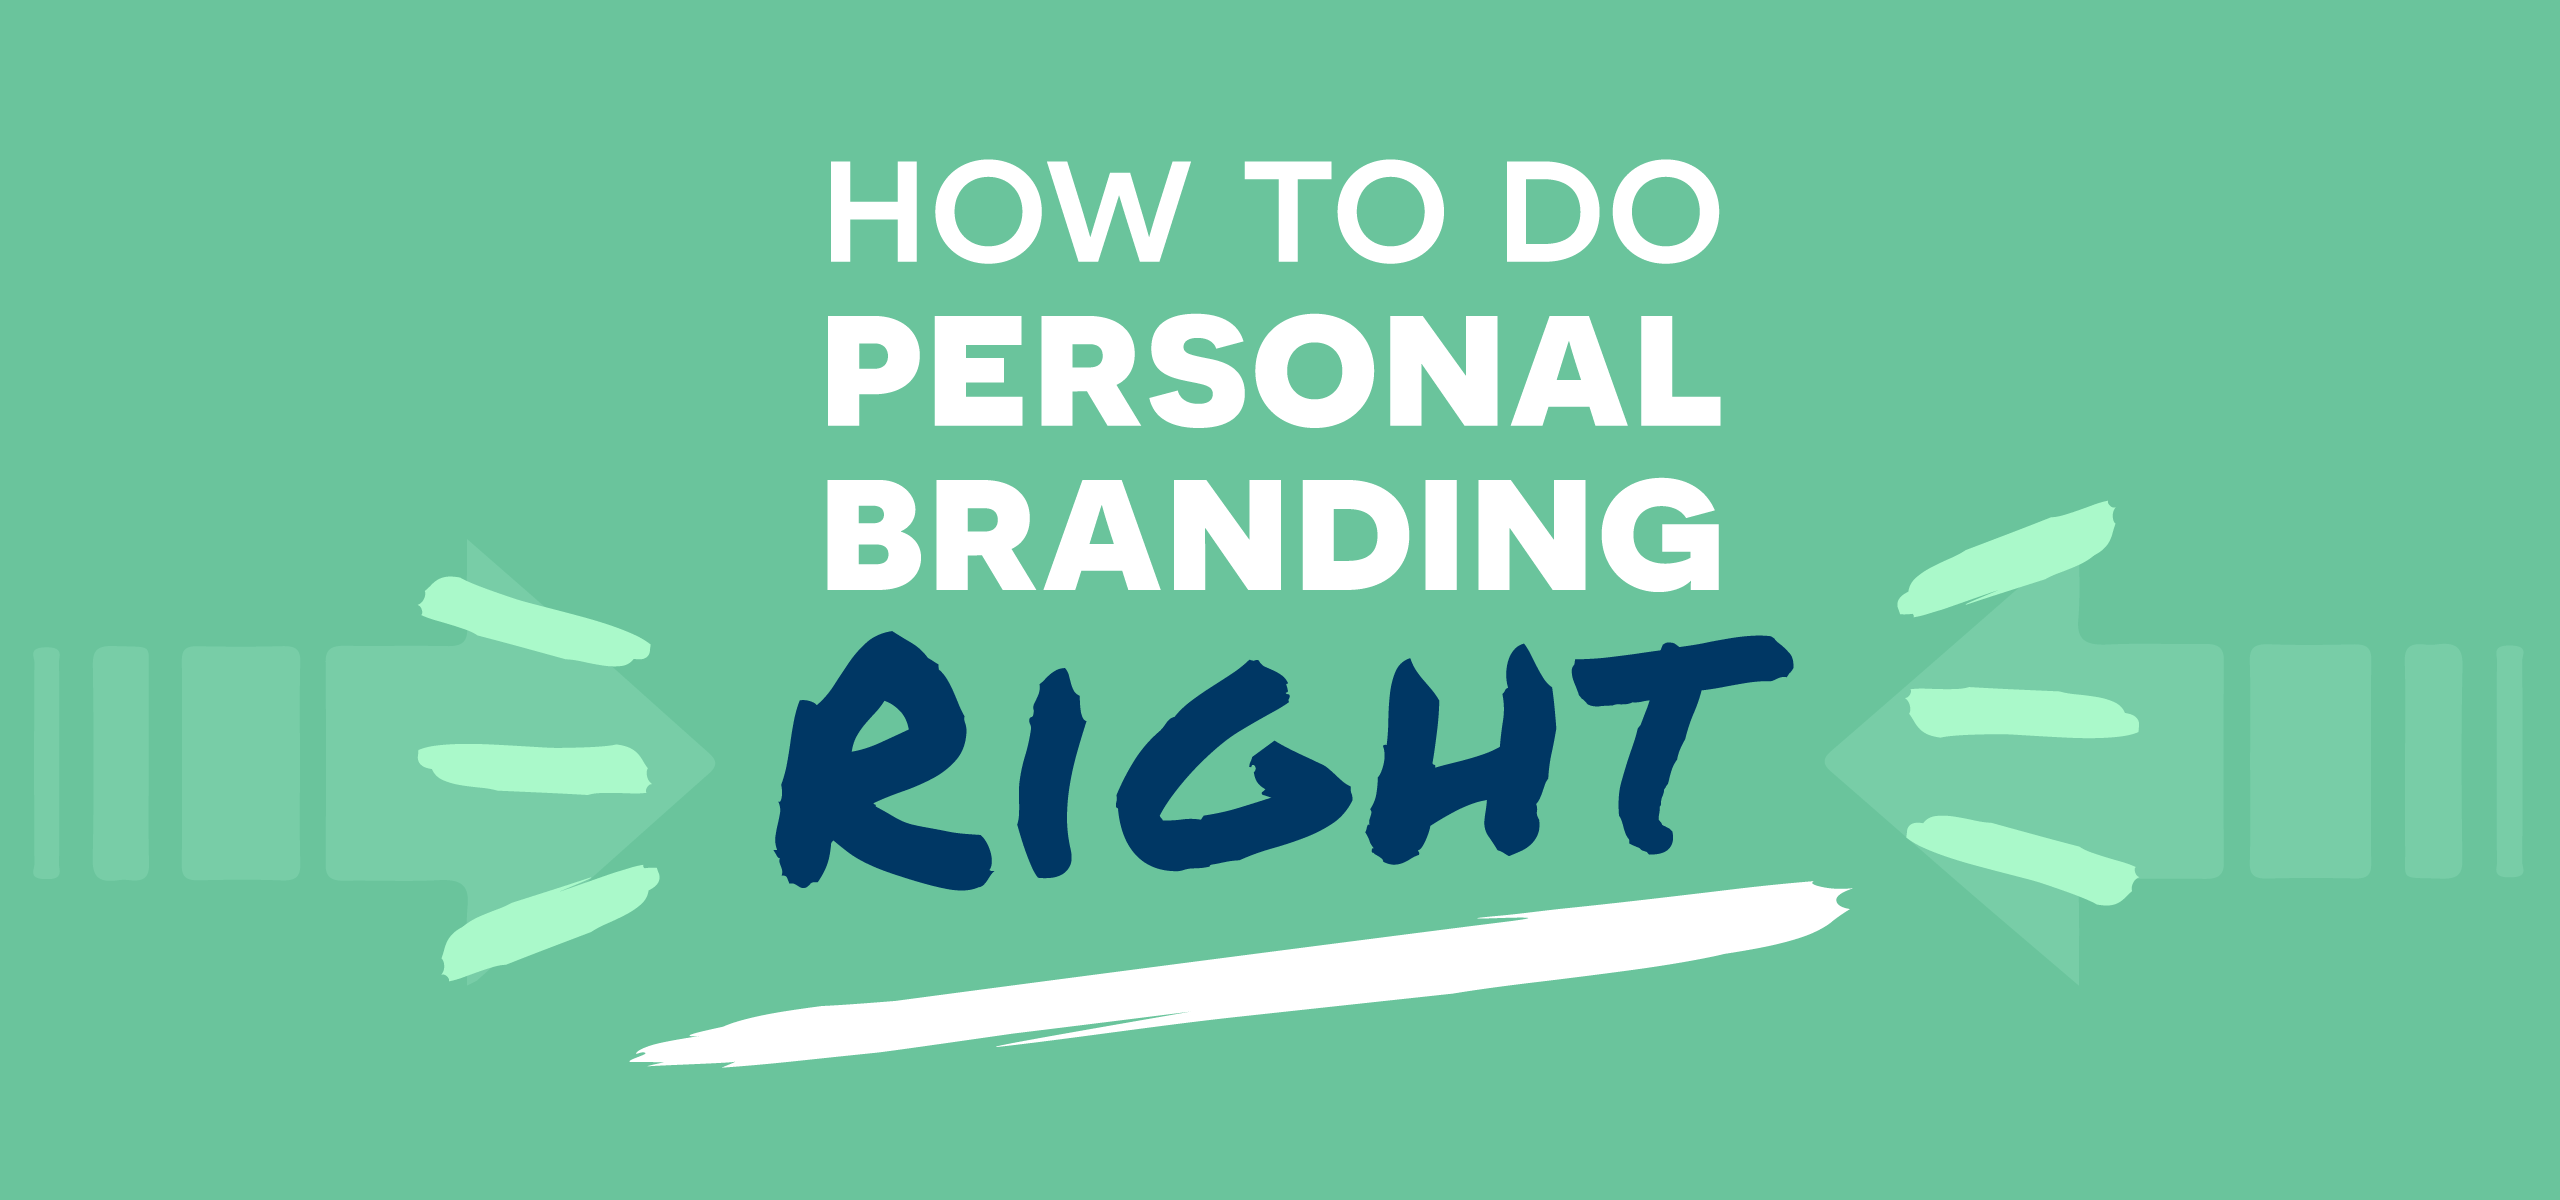 How To Do Personal Branding Right: #HRNotes Cliff Notes